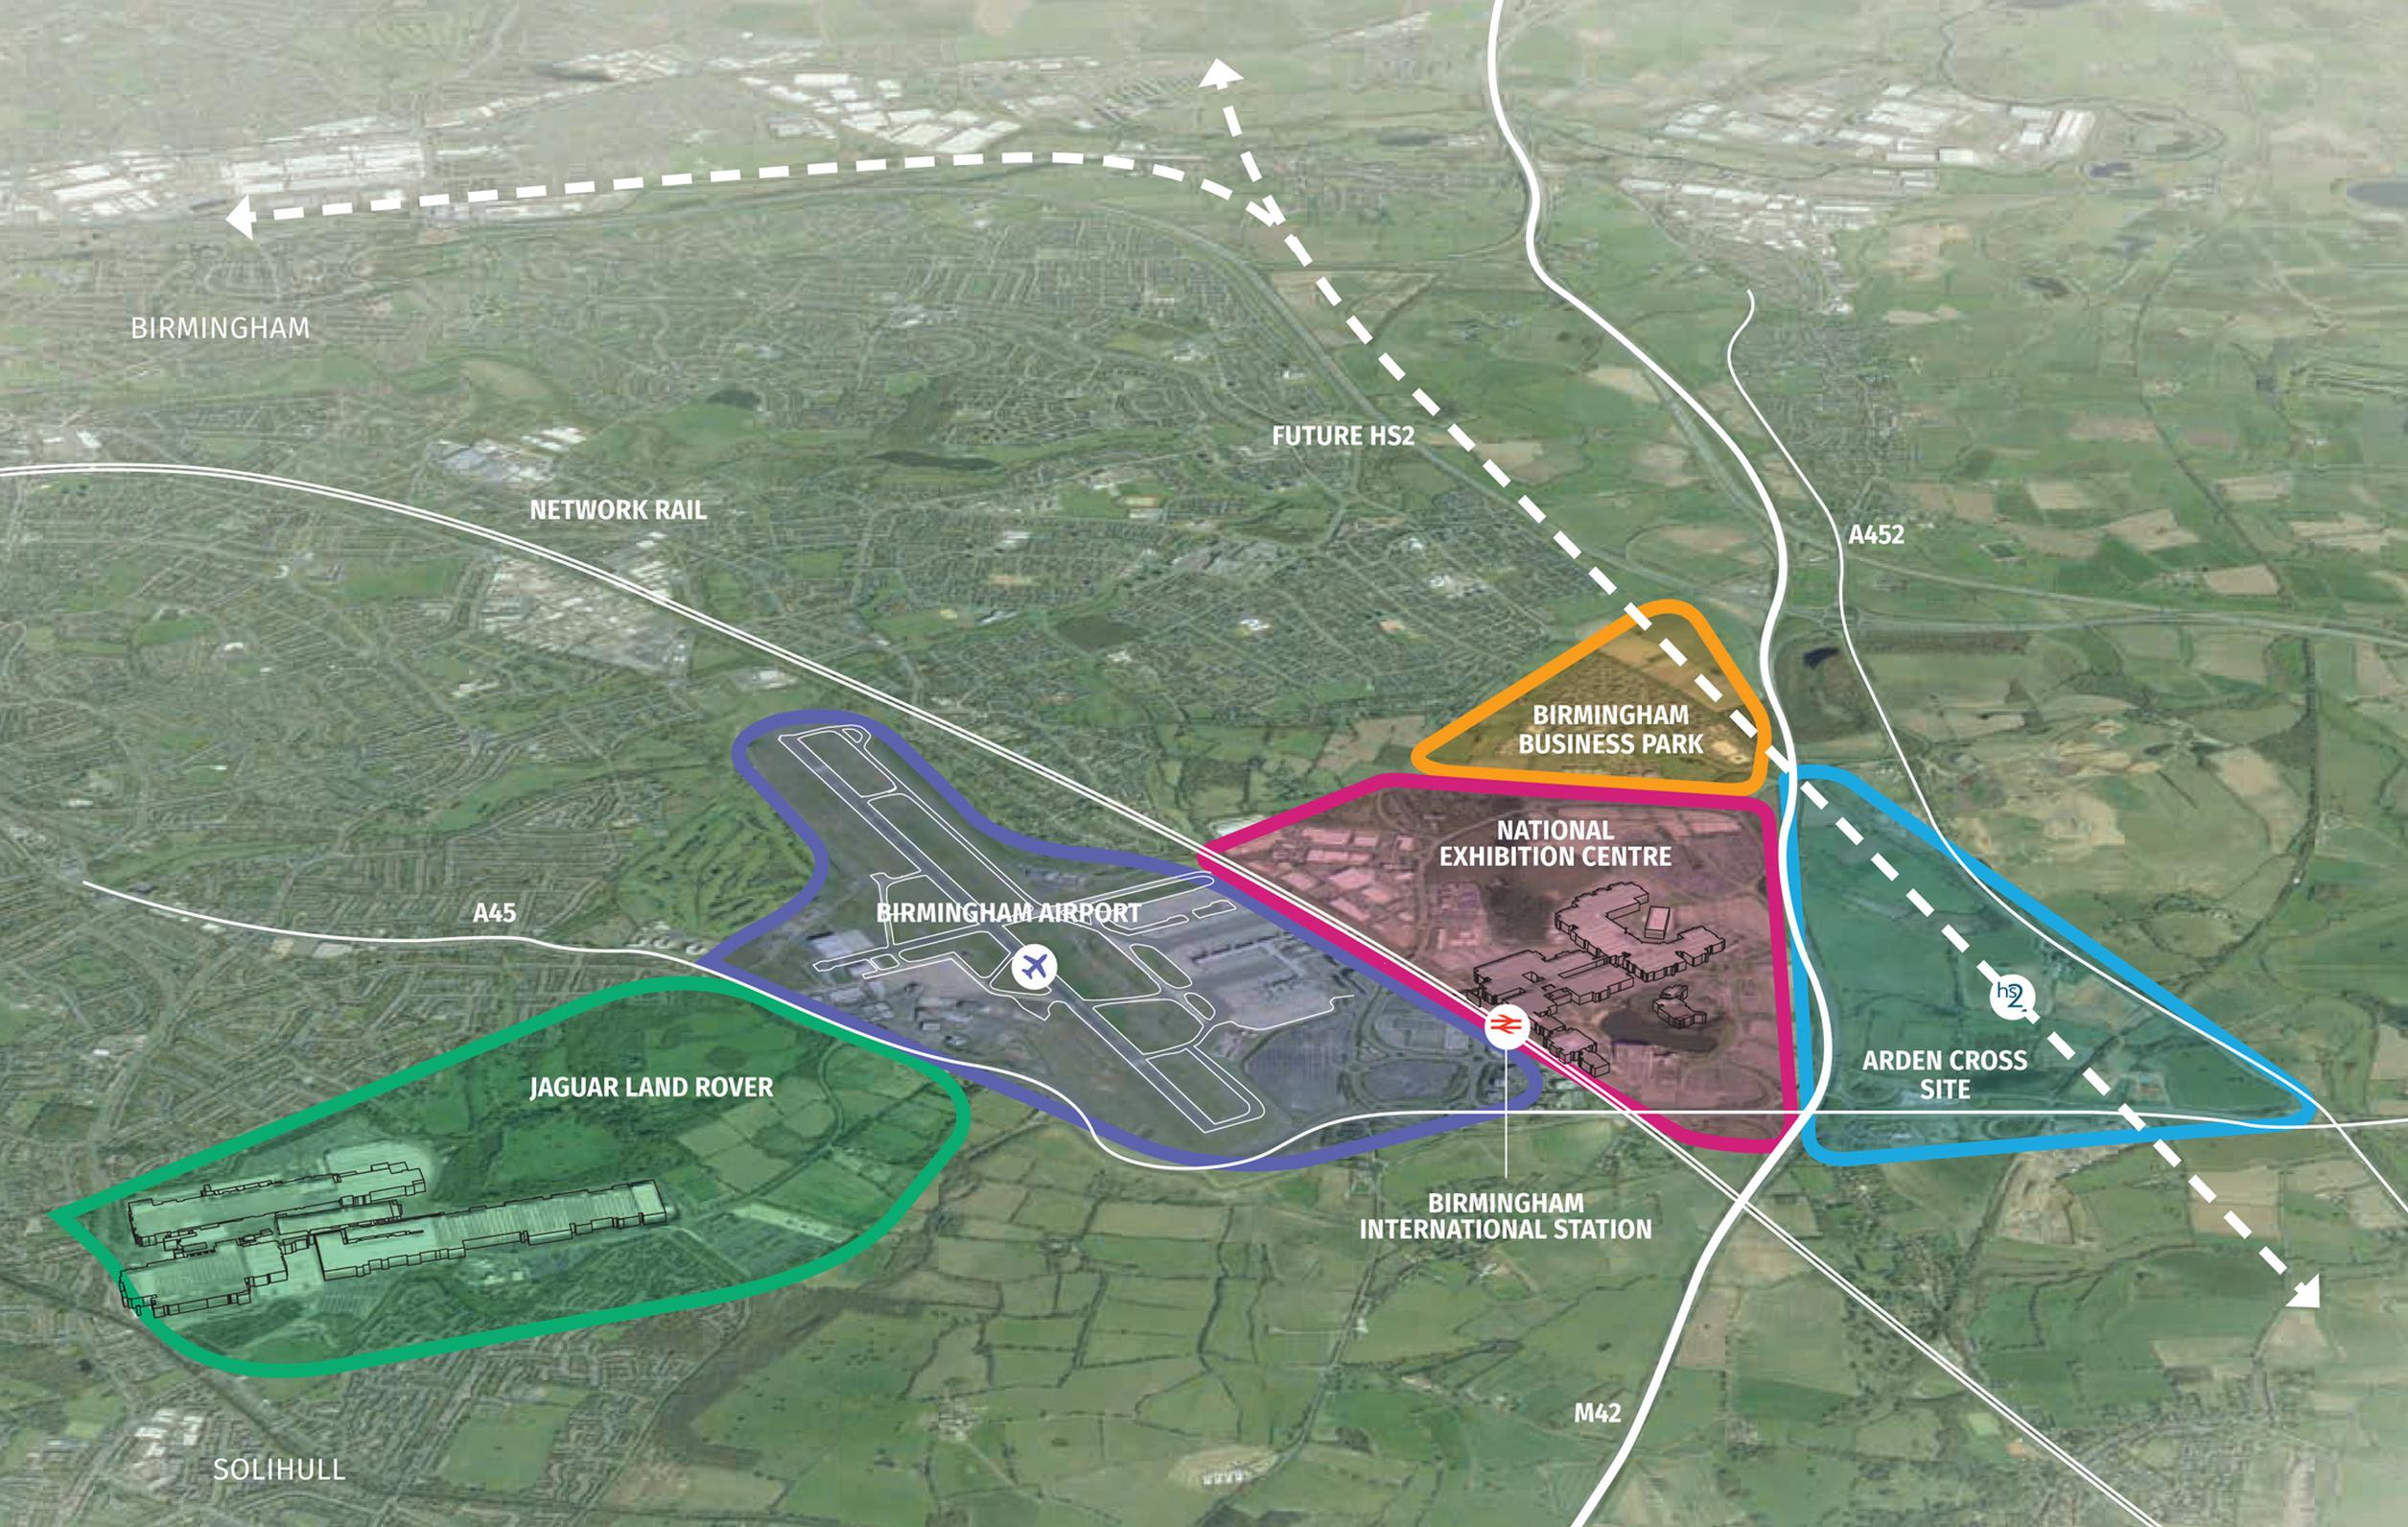 The image shows the main sites in UK Central. HS2 is the dotted line